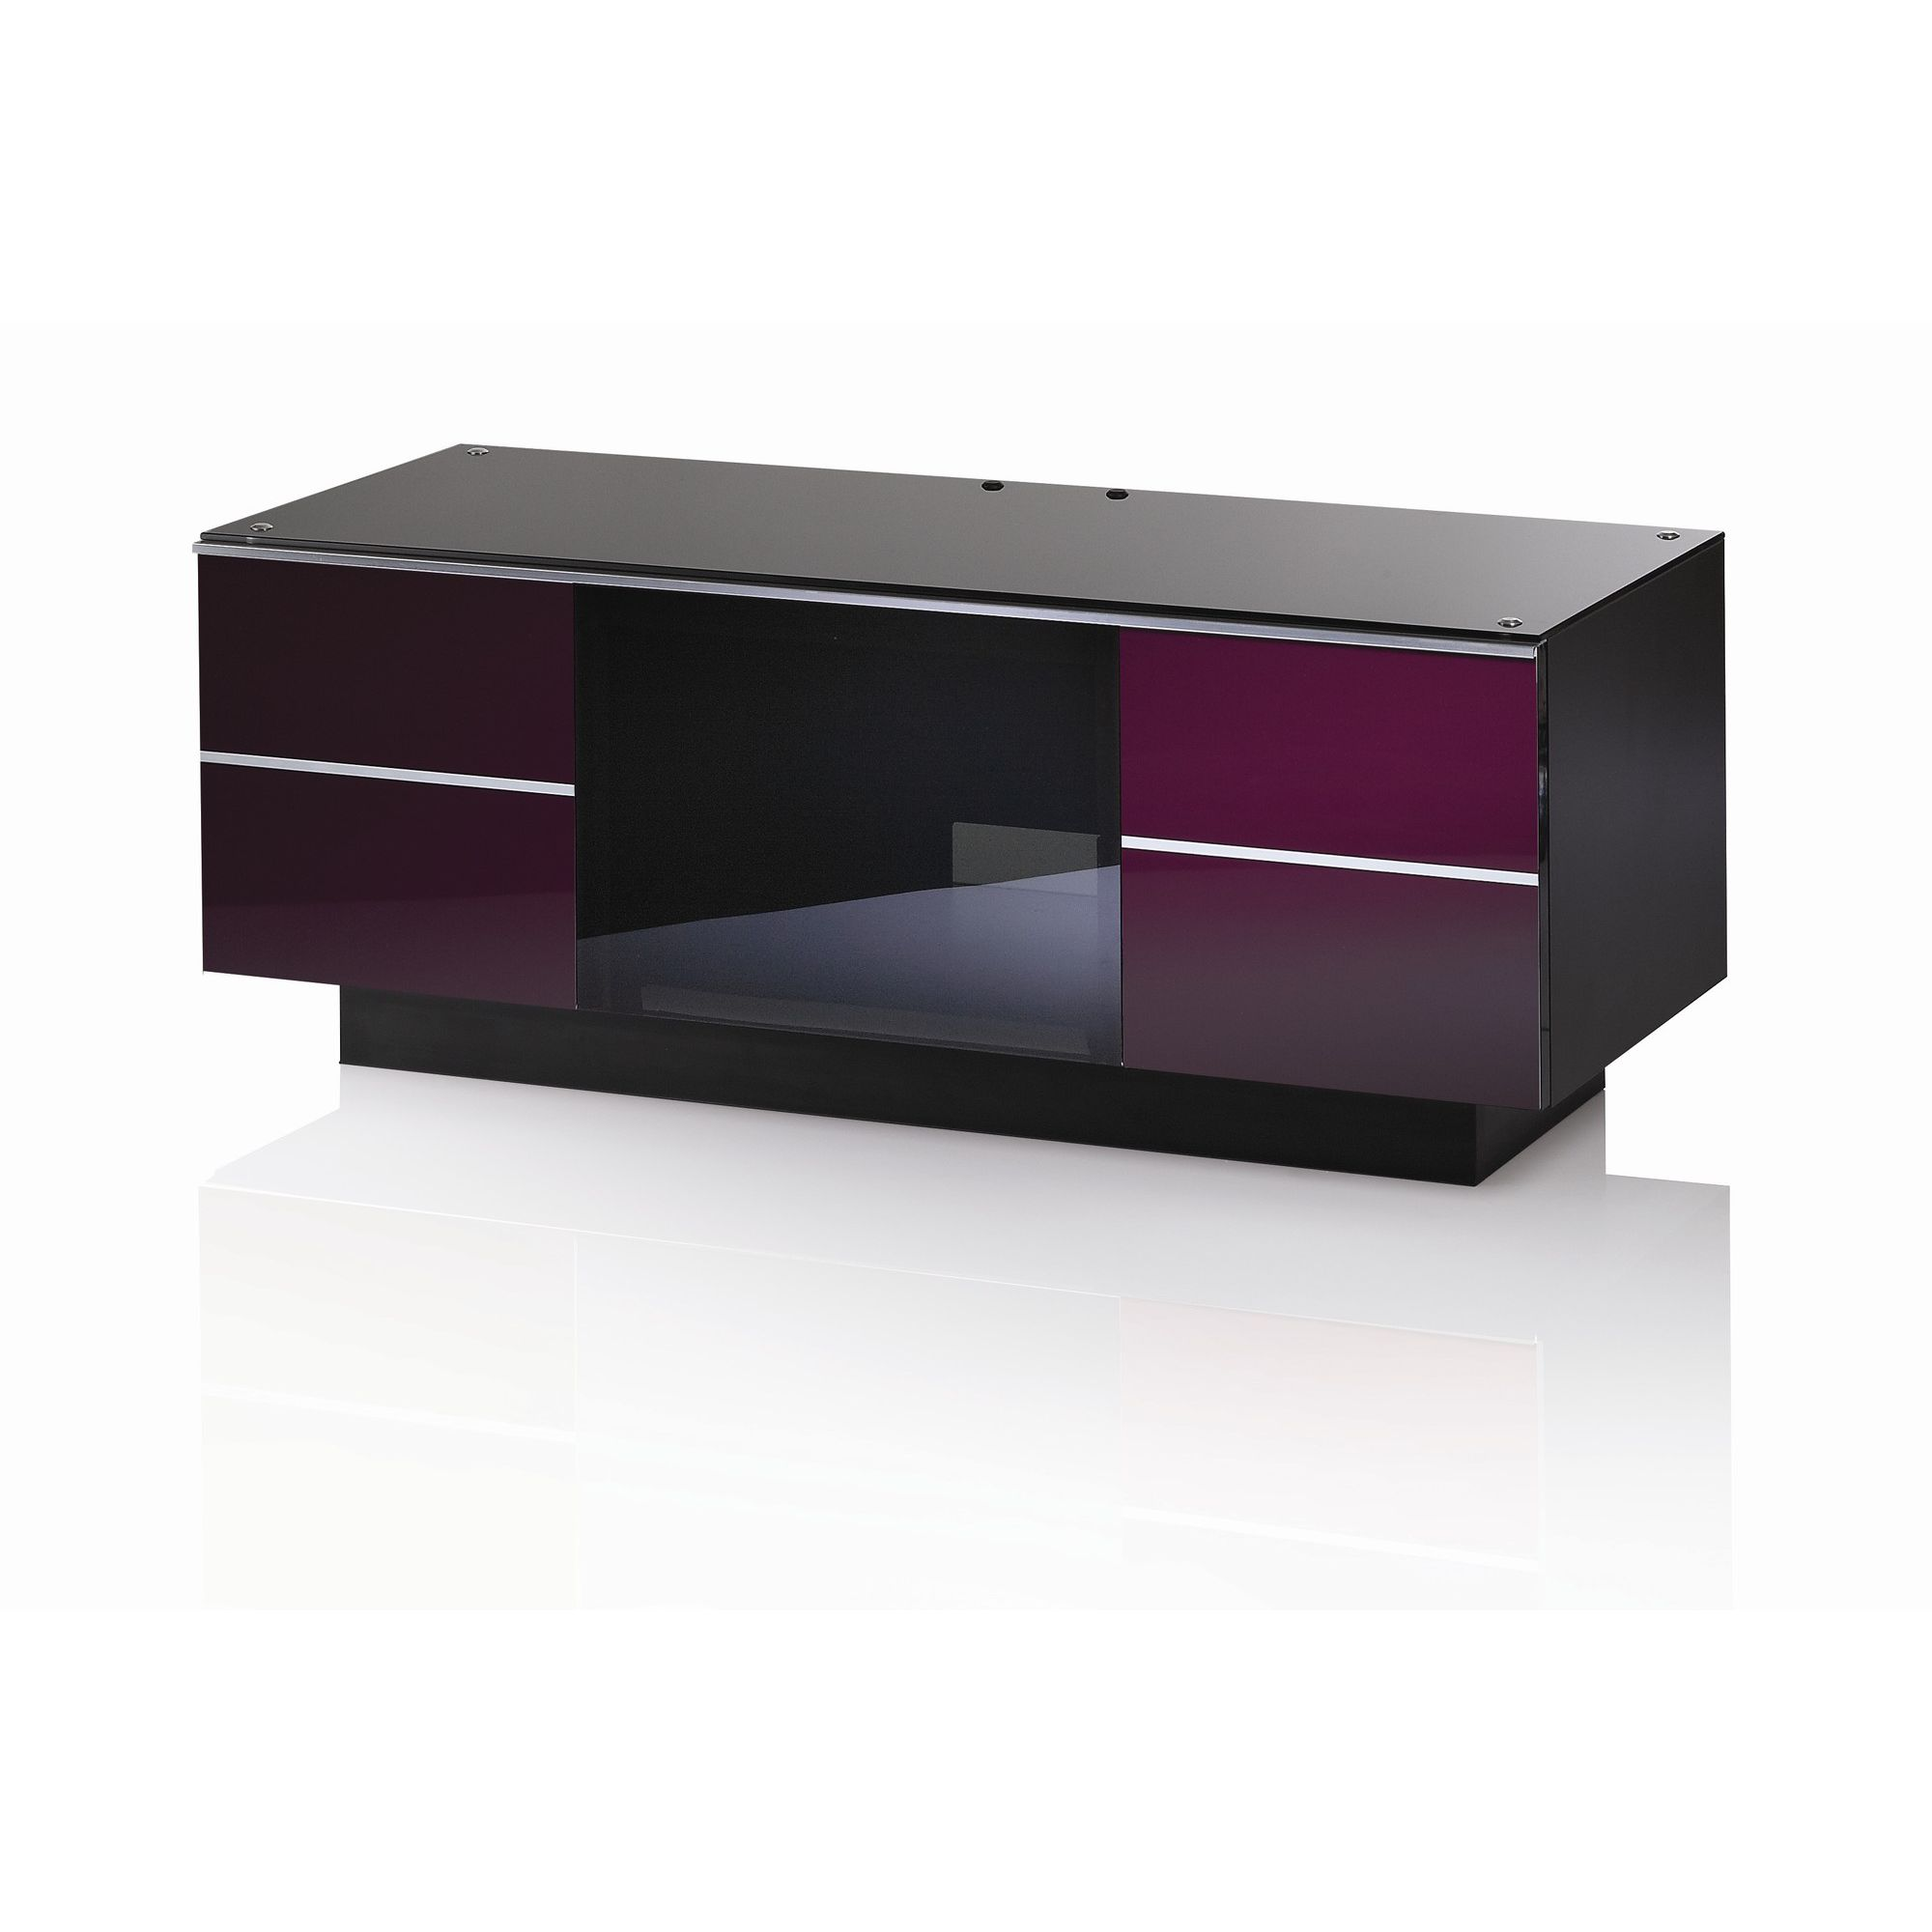 UK-CF G Series GG TV Stand - 110cm - Damson at Tesco Direct